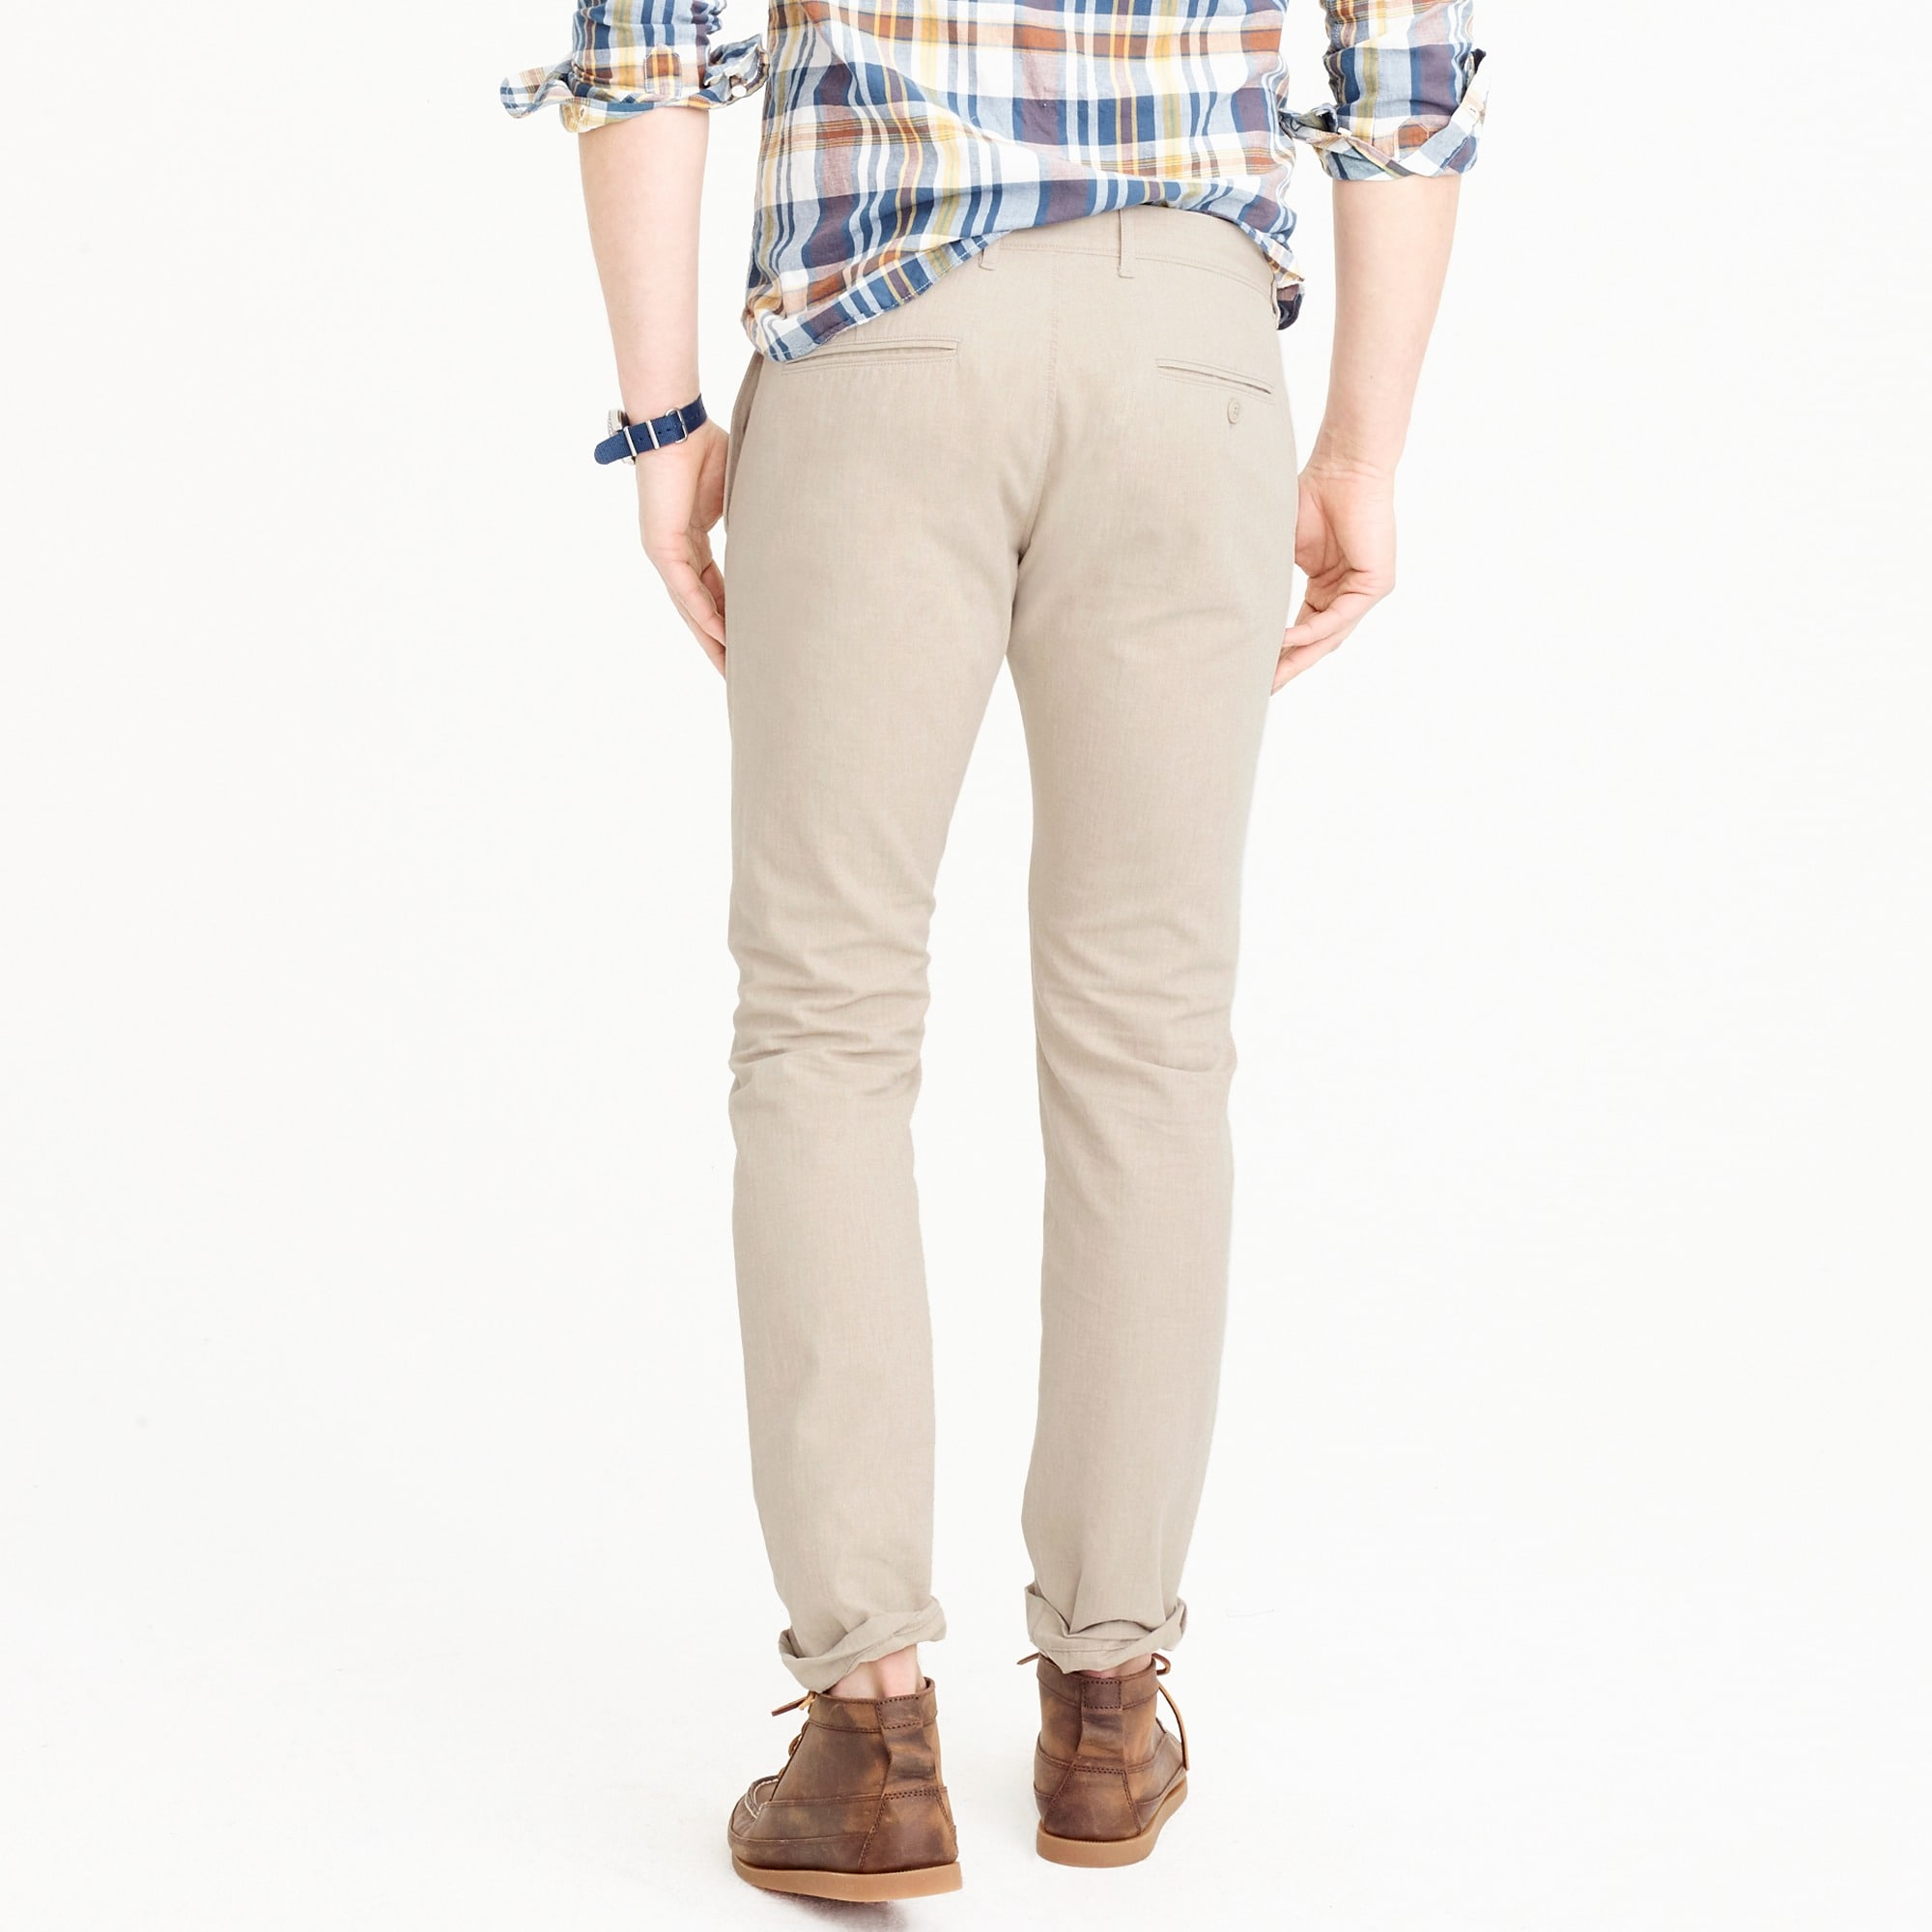 484 Slim-fit chino in stretch herringbone